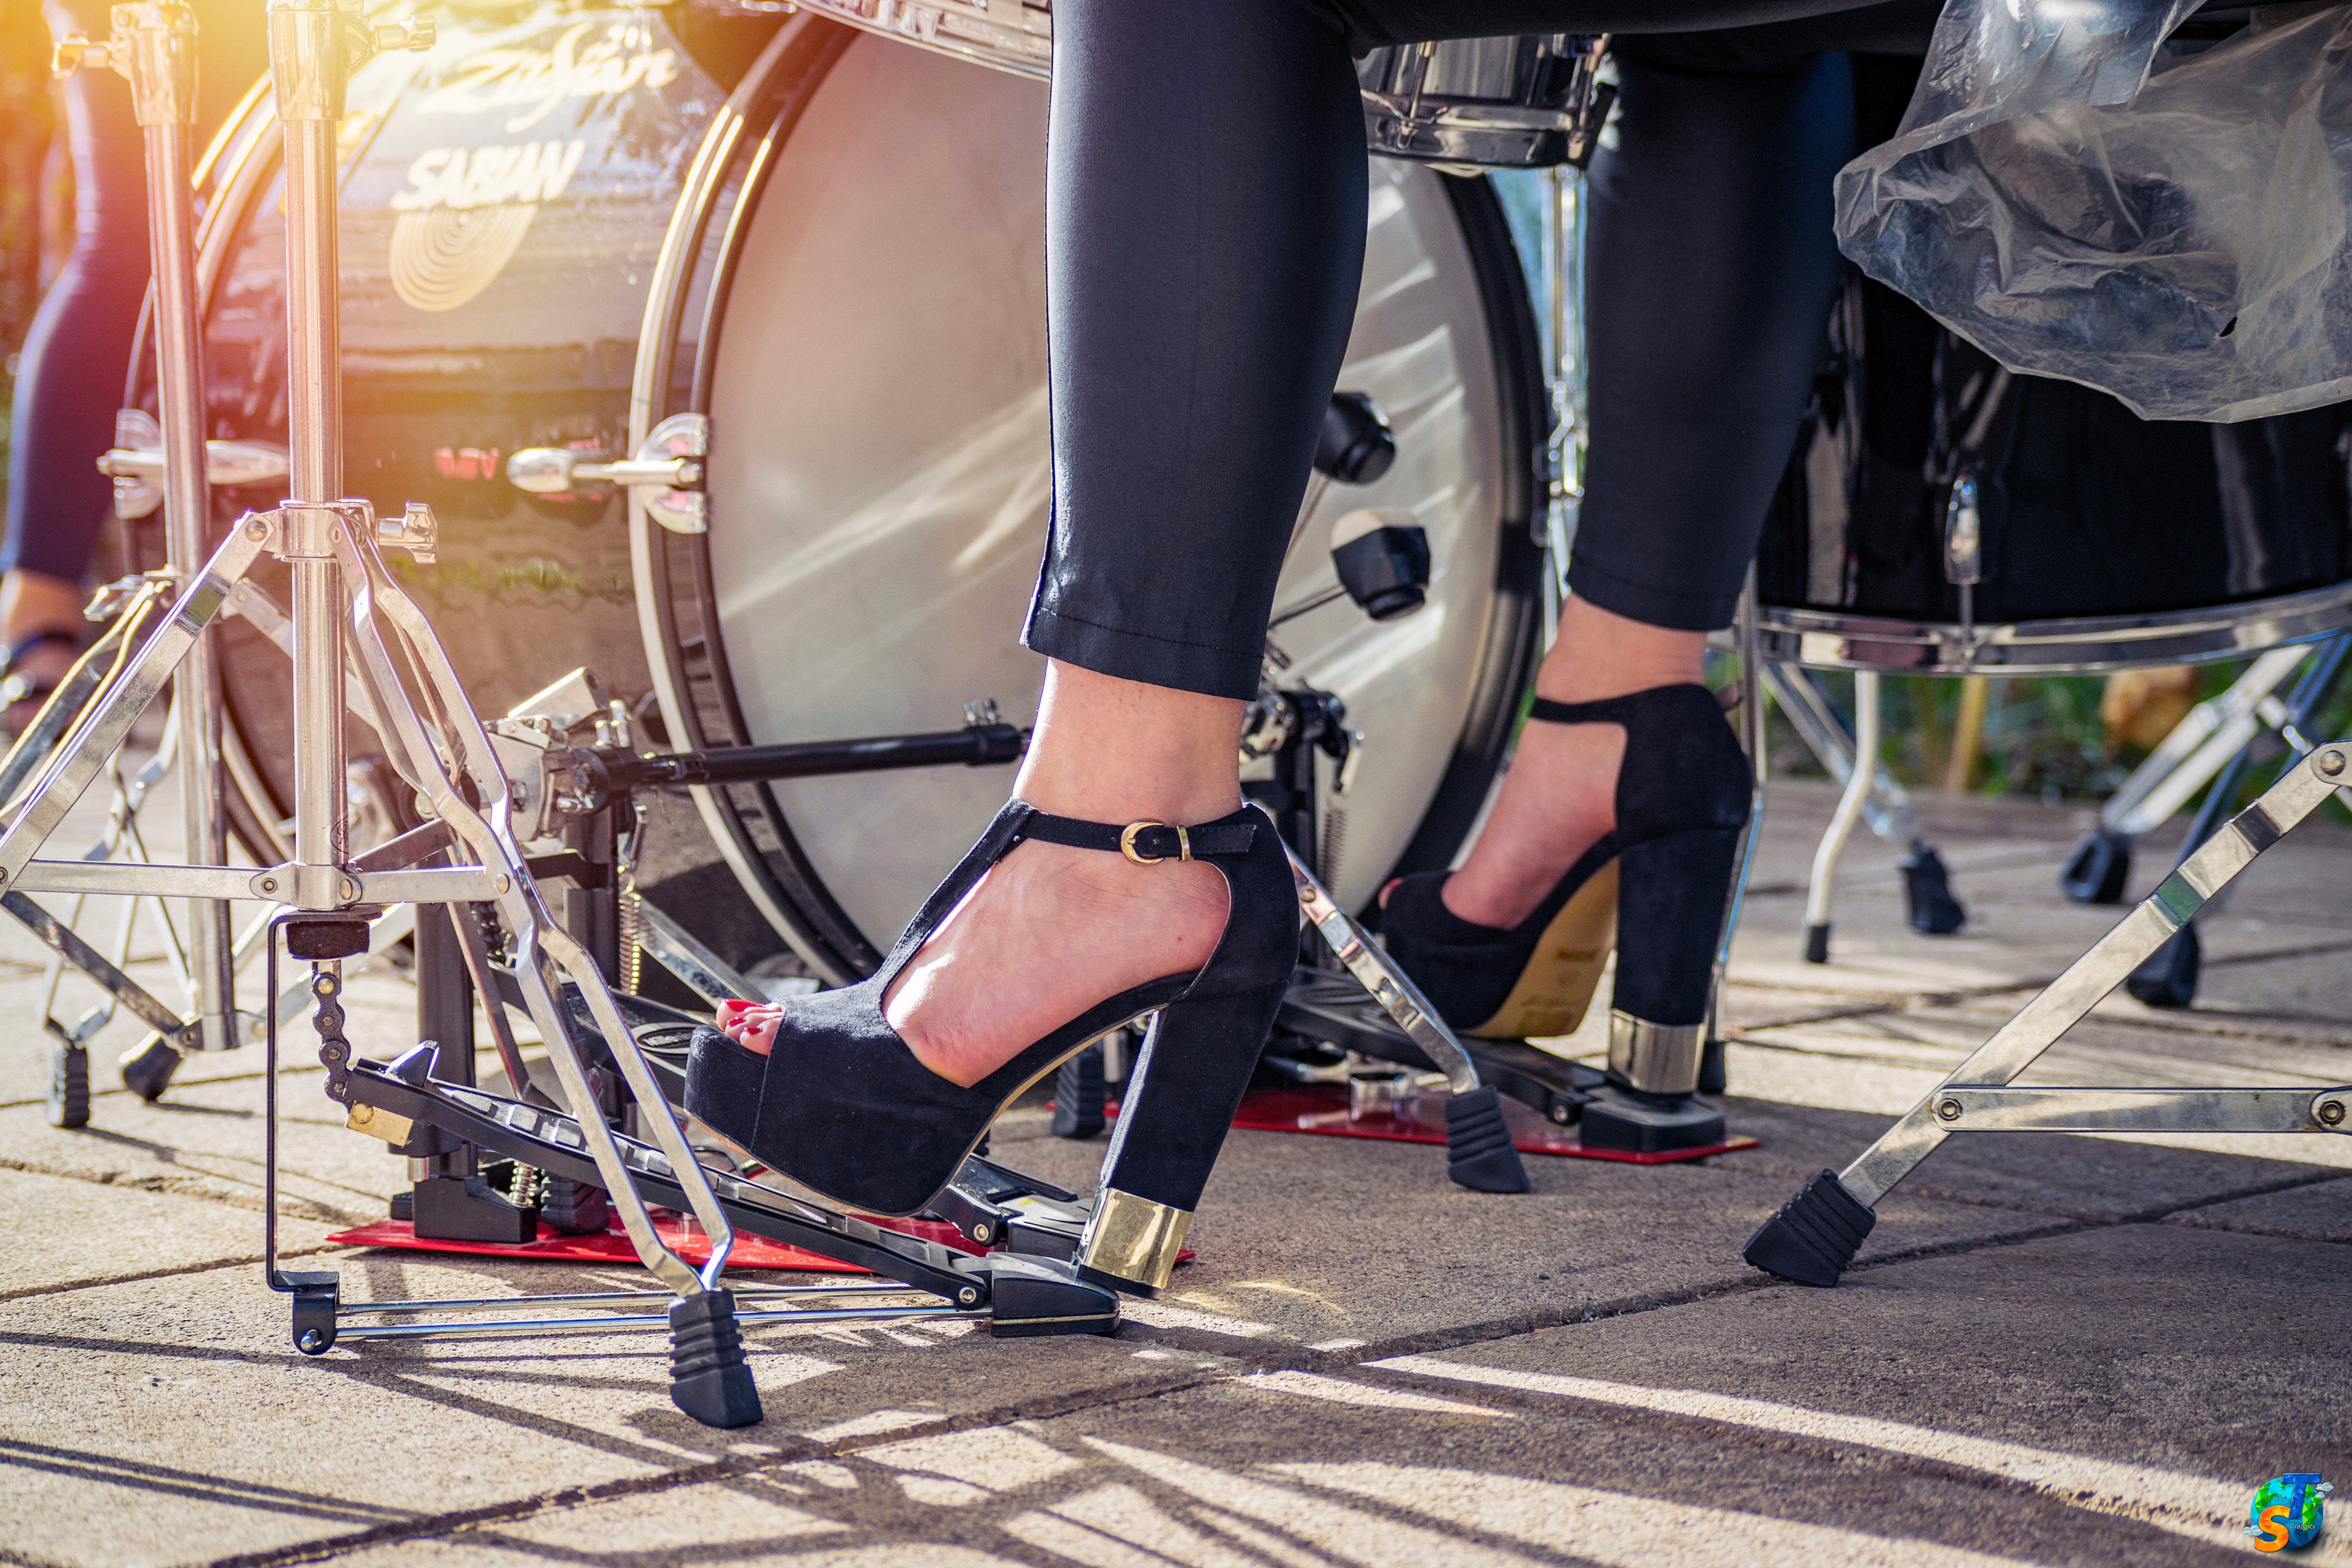 playing drums in high heels outdoors